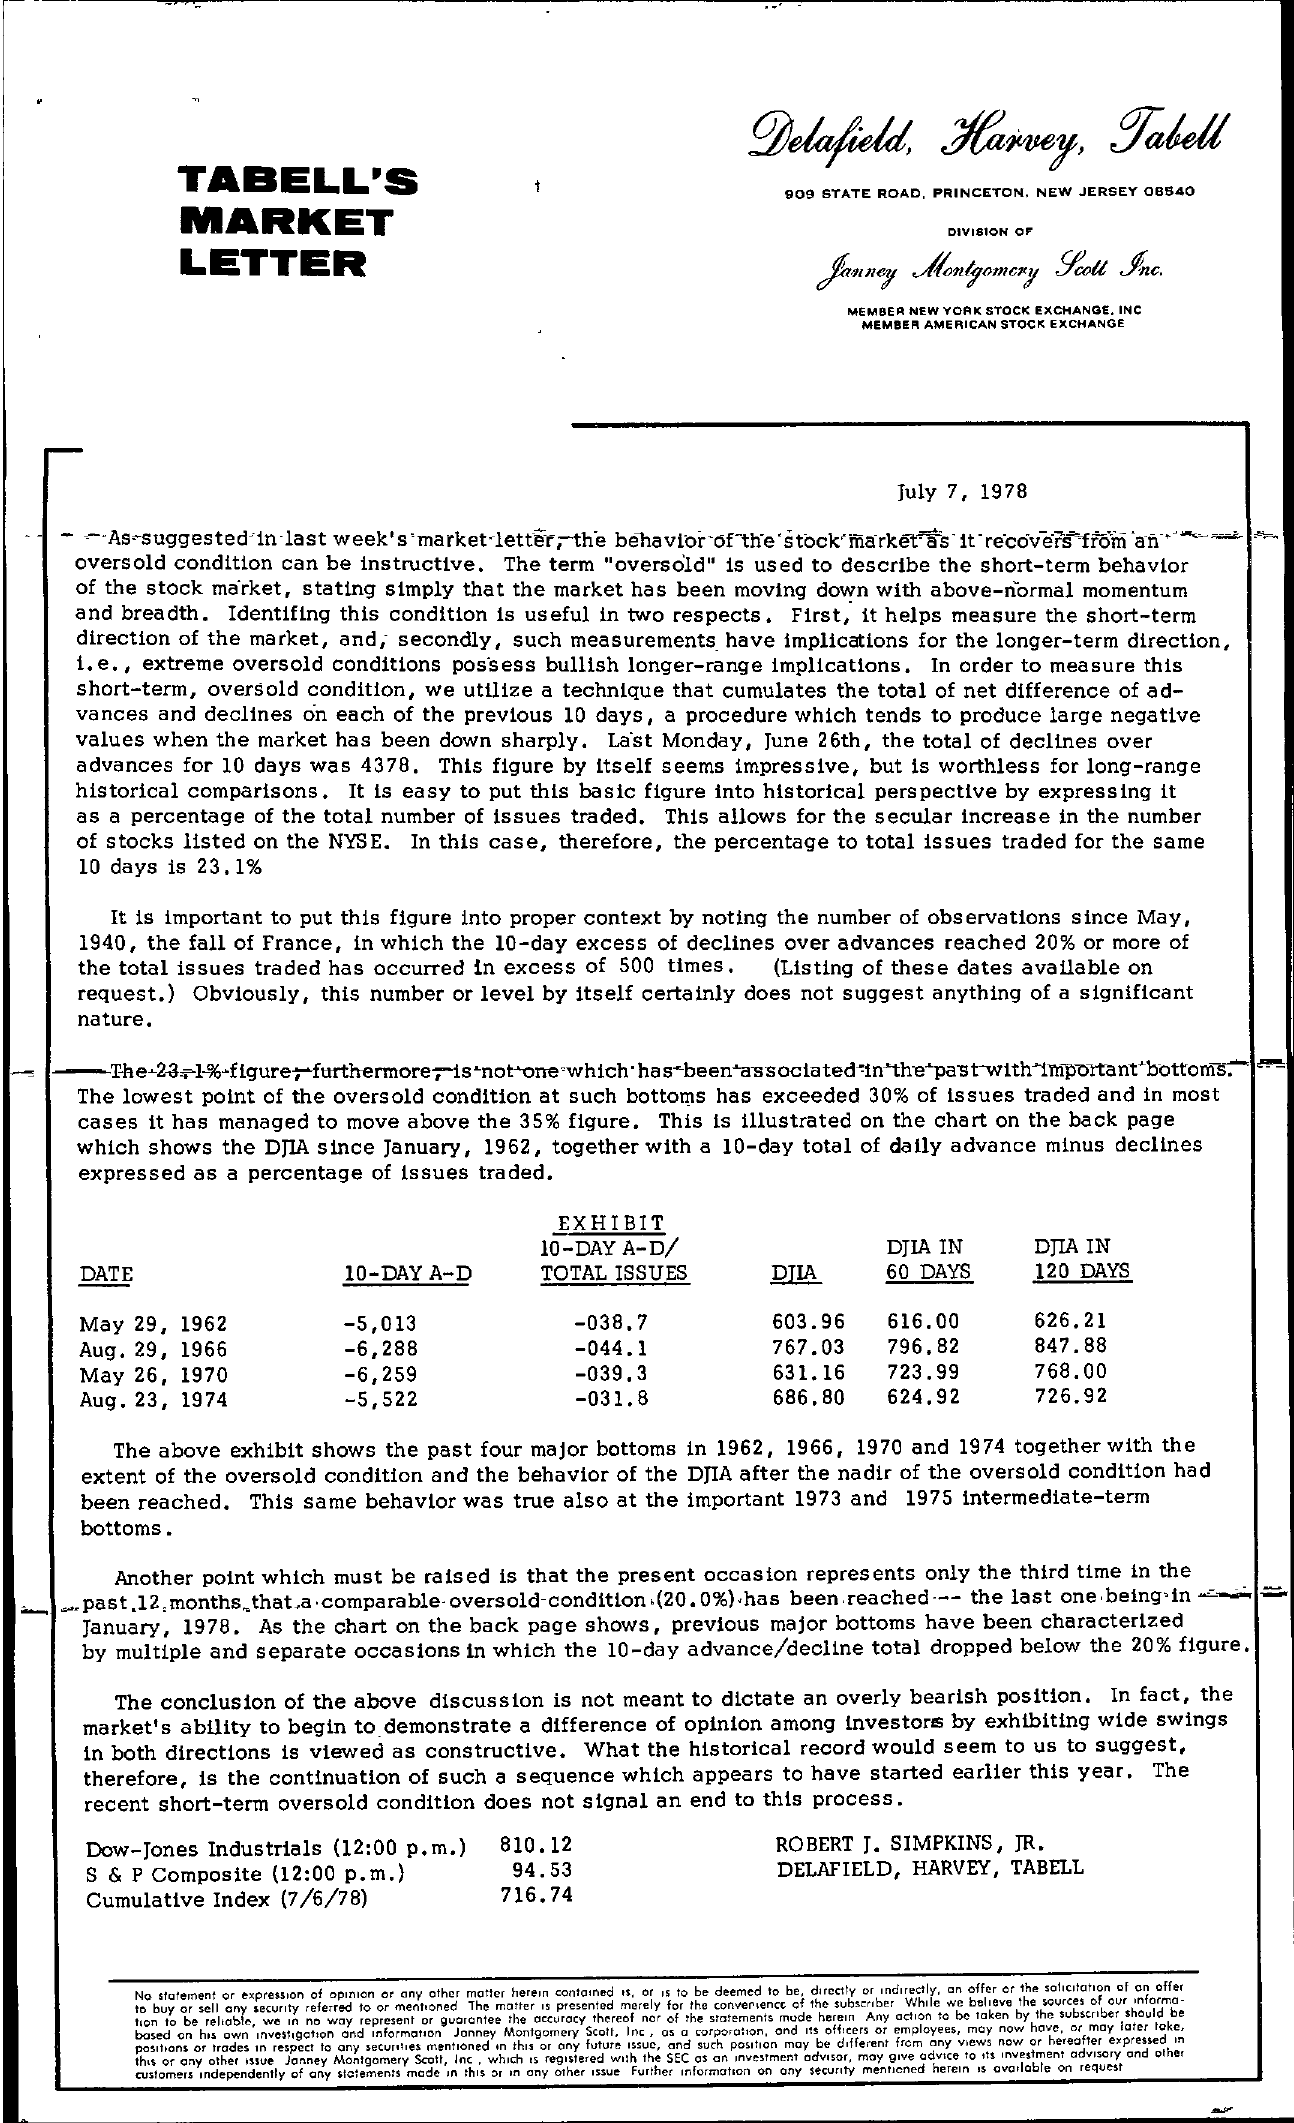 Tabell's Market Letter - July 07, 1978 page 1